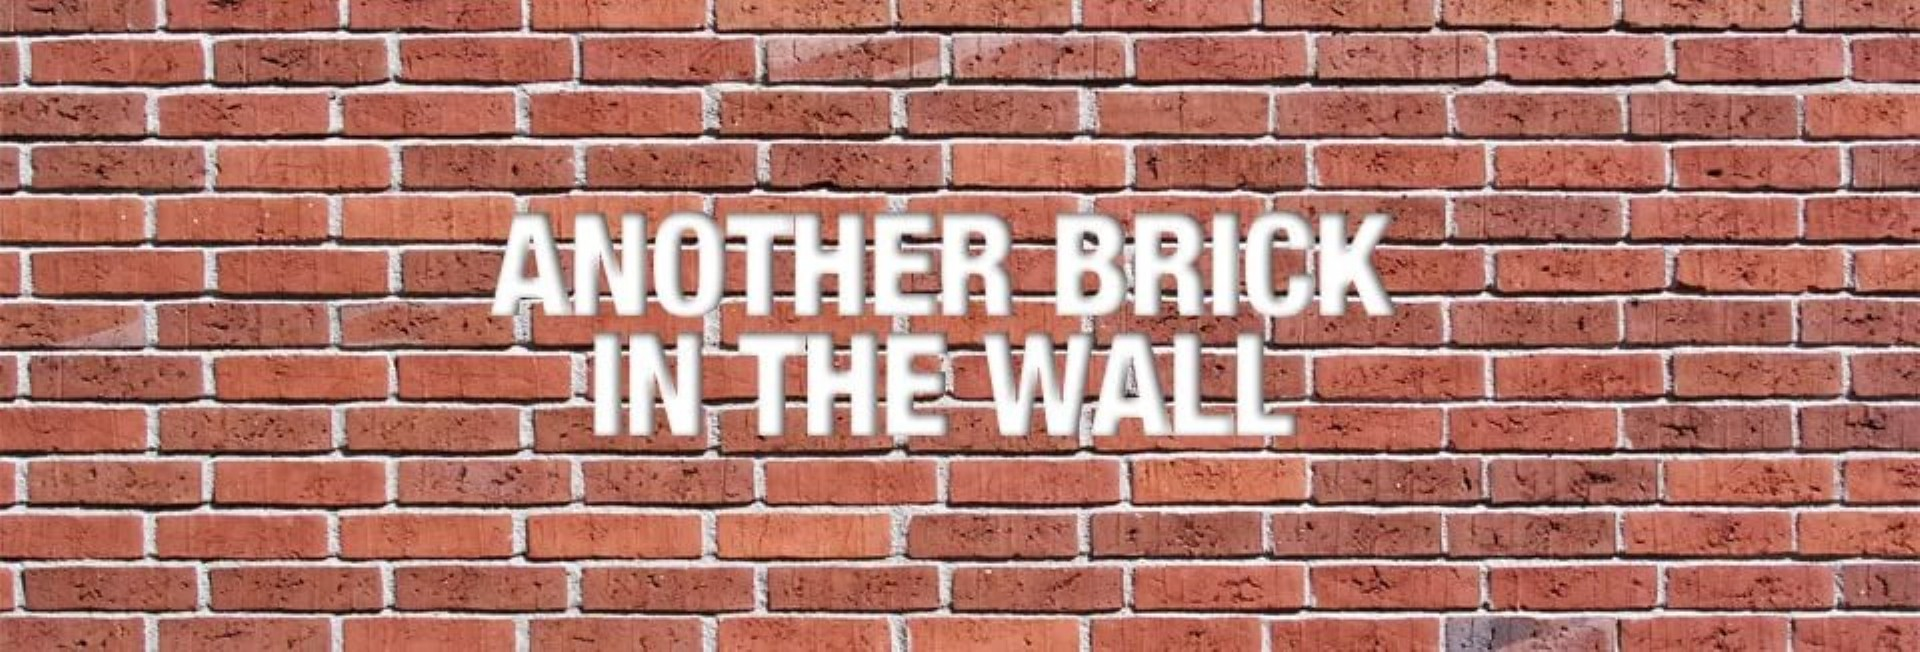 Another brick in the wall pictures